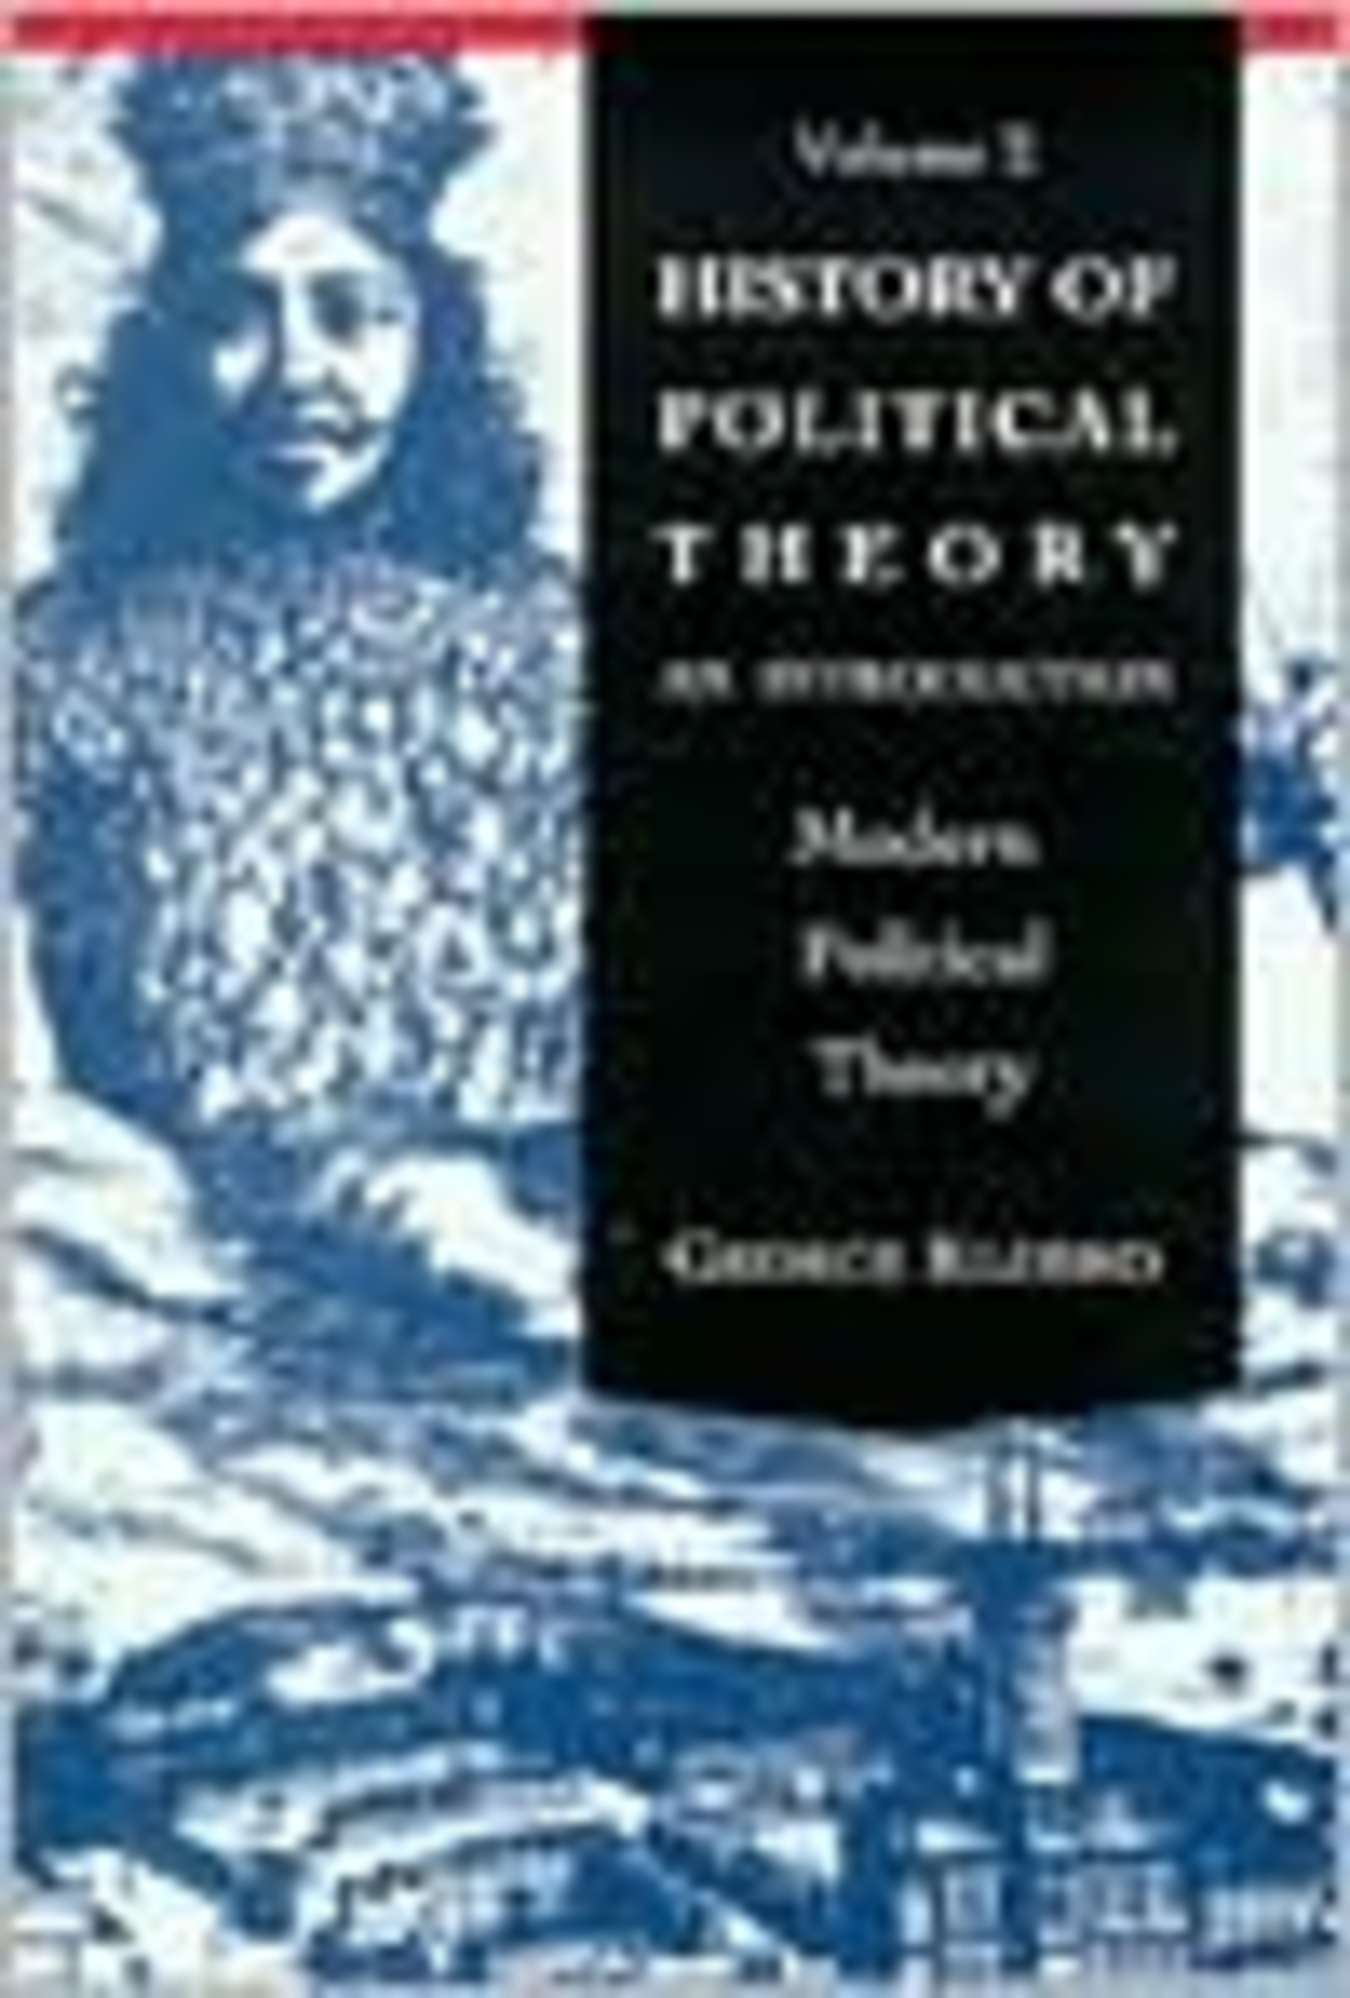 an introduction to the analysis of the politics by george bush Political personality of george w bush 2 the psychodiagnostic approach to studying political personality is equivalent to that of simonton (1986, 1988) in that it quantifies, reduces, and organizes qualitative data derived from.